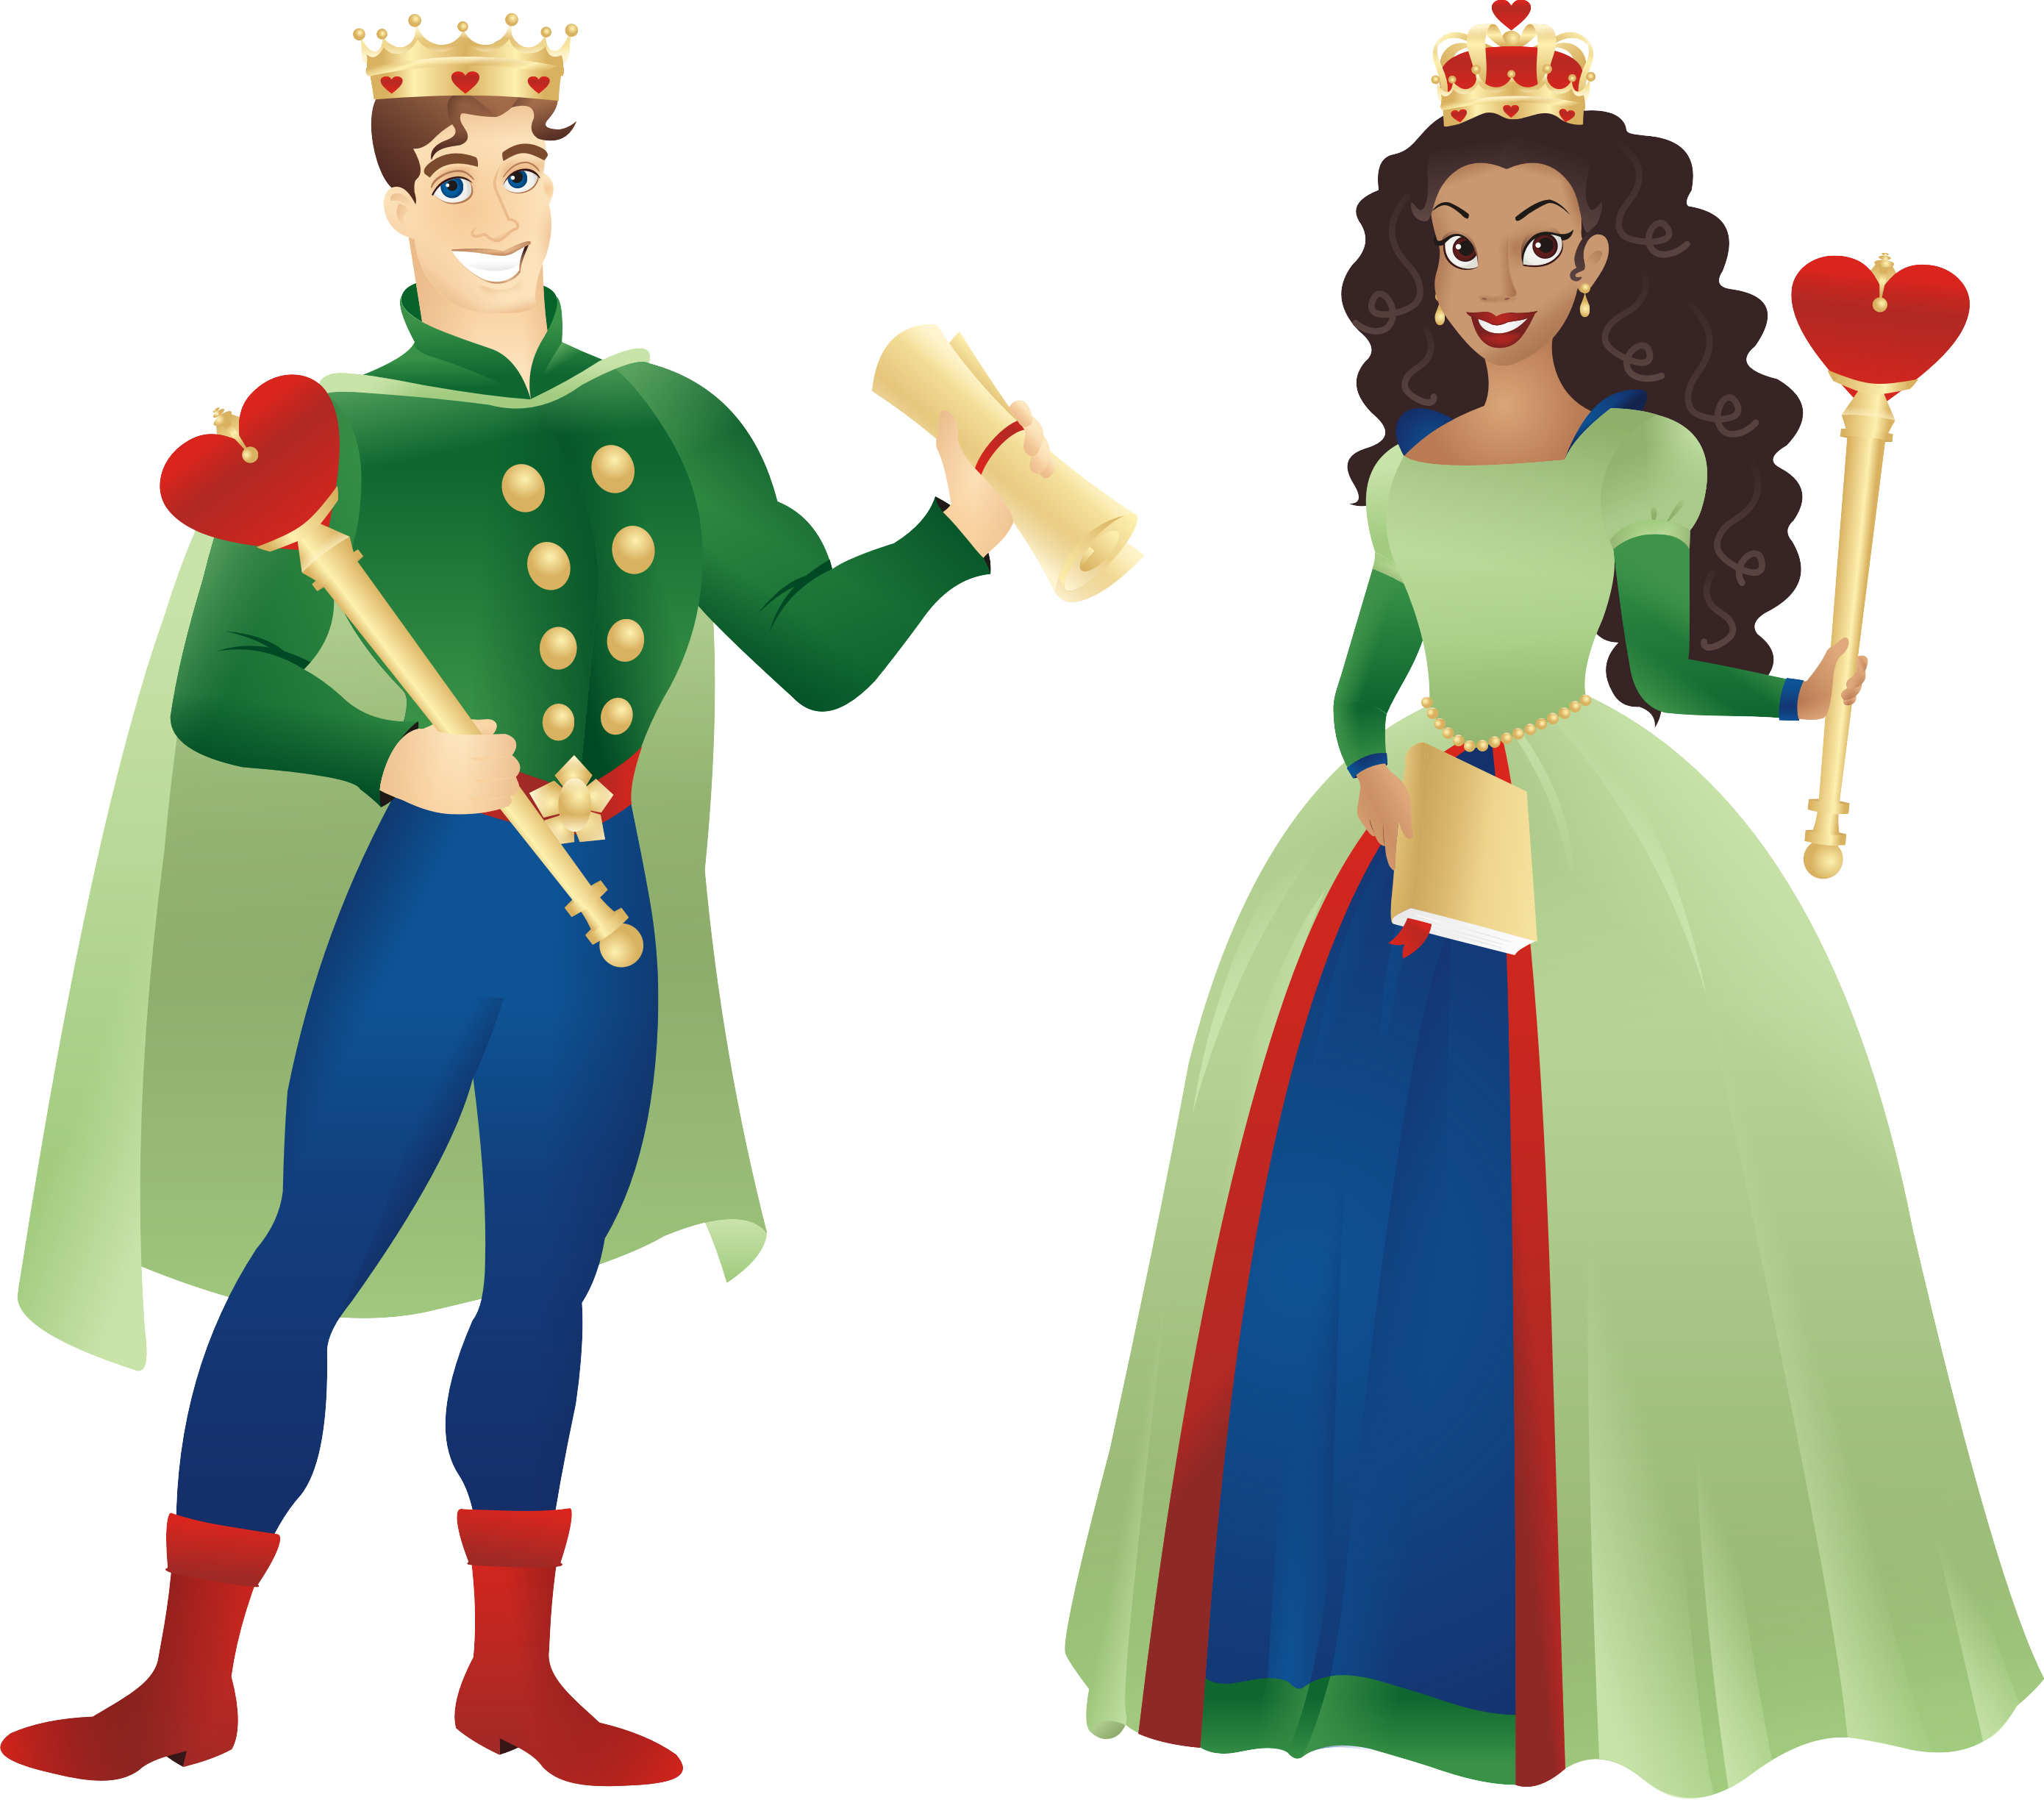 King and queen of hearts clipart graphic black and white King And Queen Clipart & King And Queen Clip Art Images ... graphic black and white